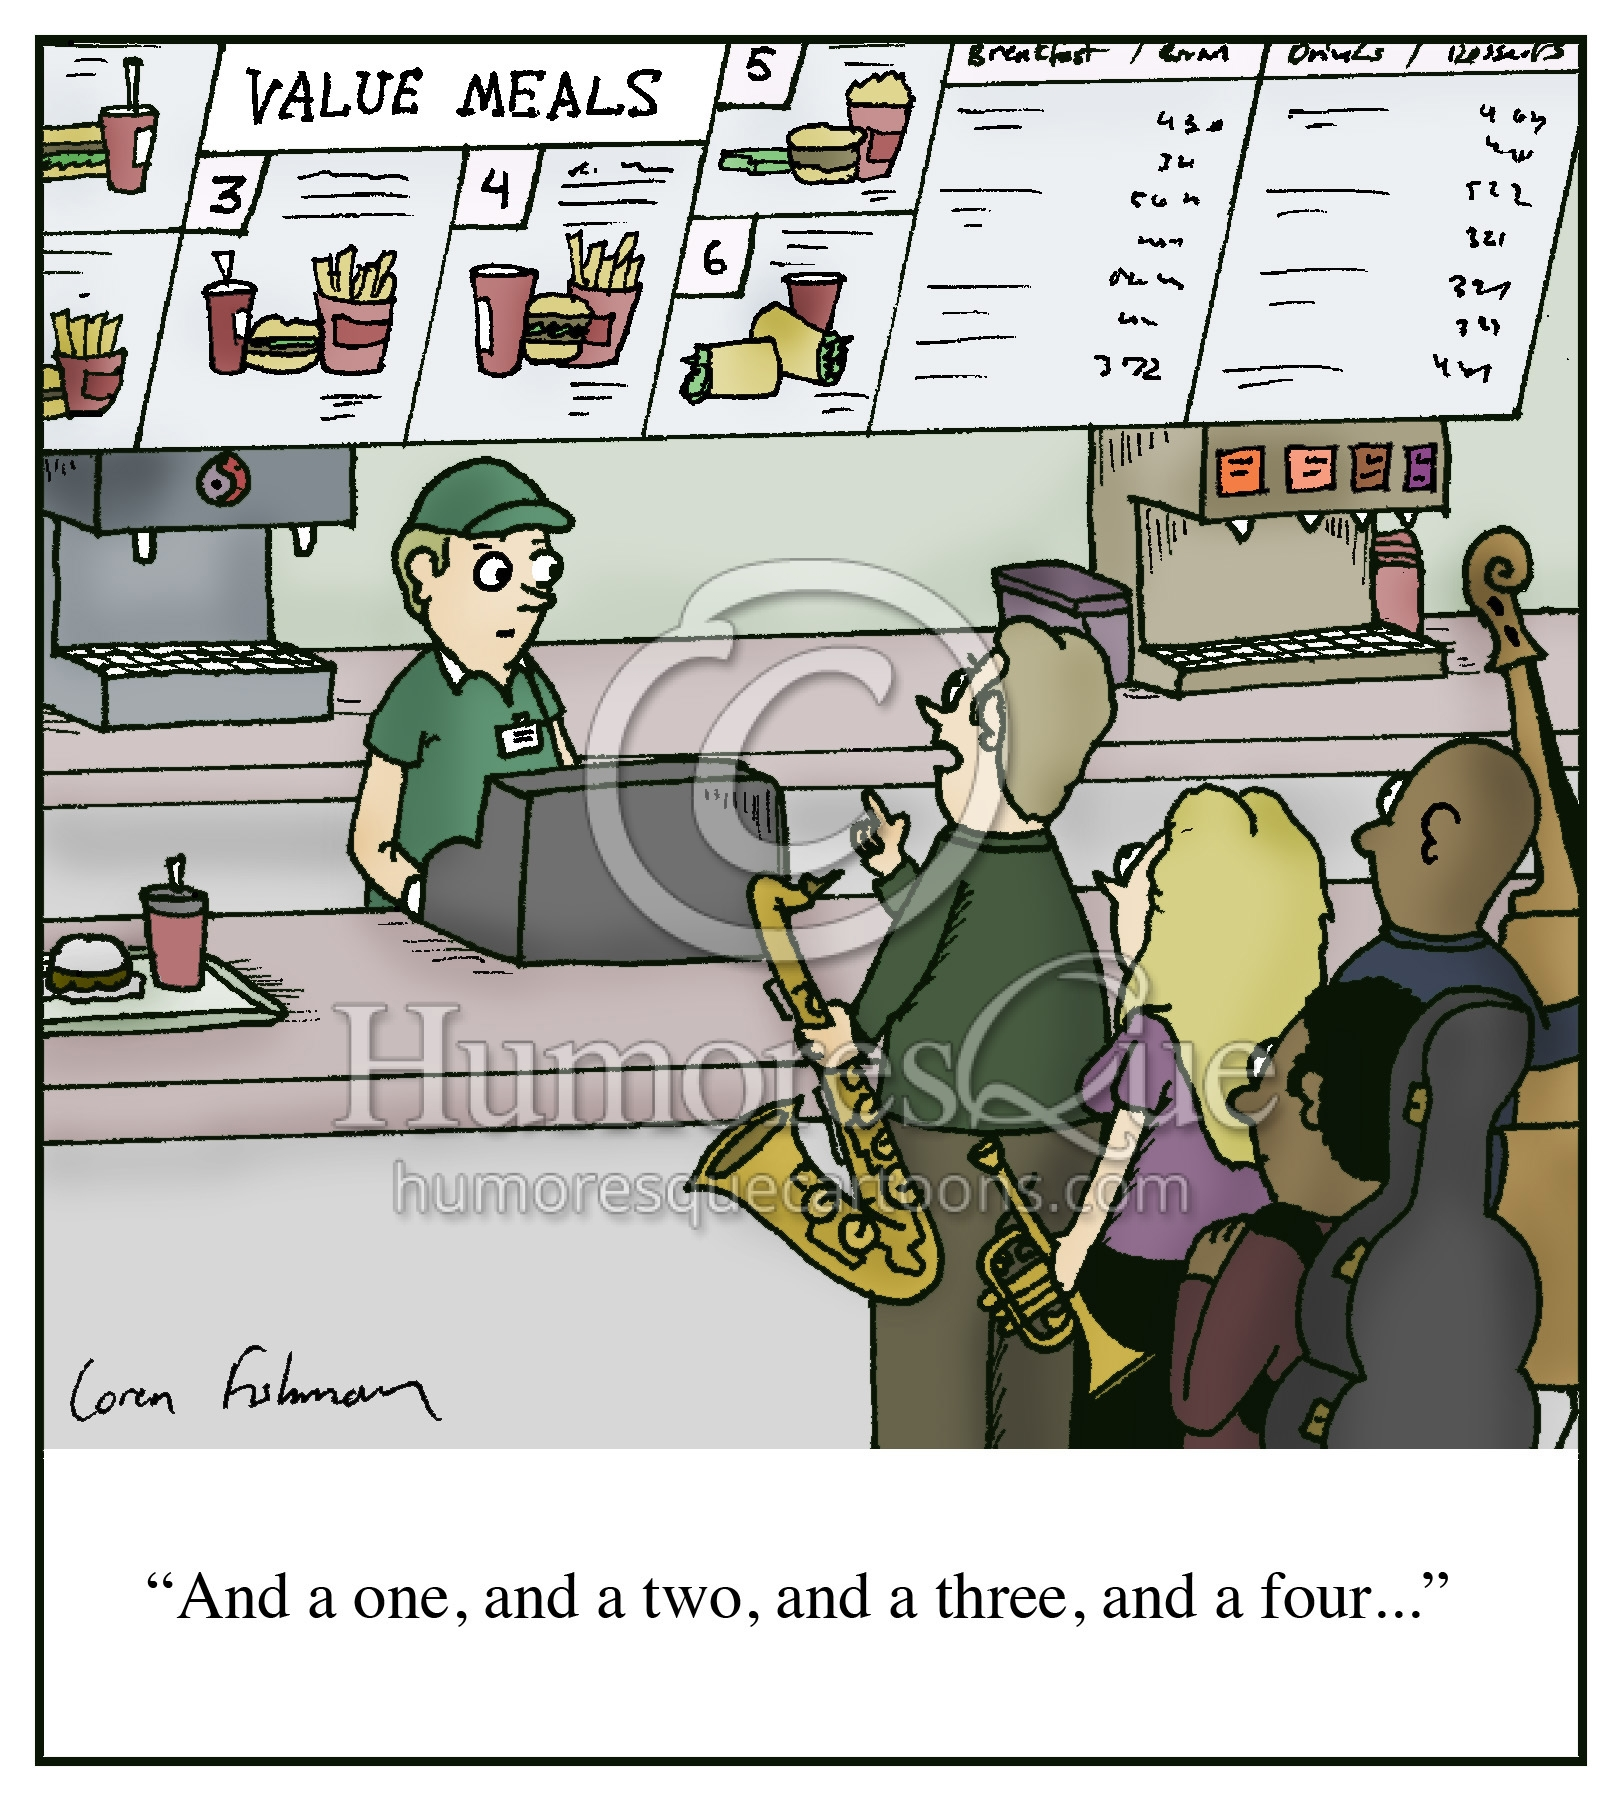 jazz combo meal cartoon